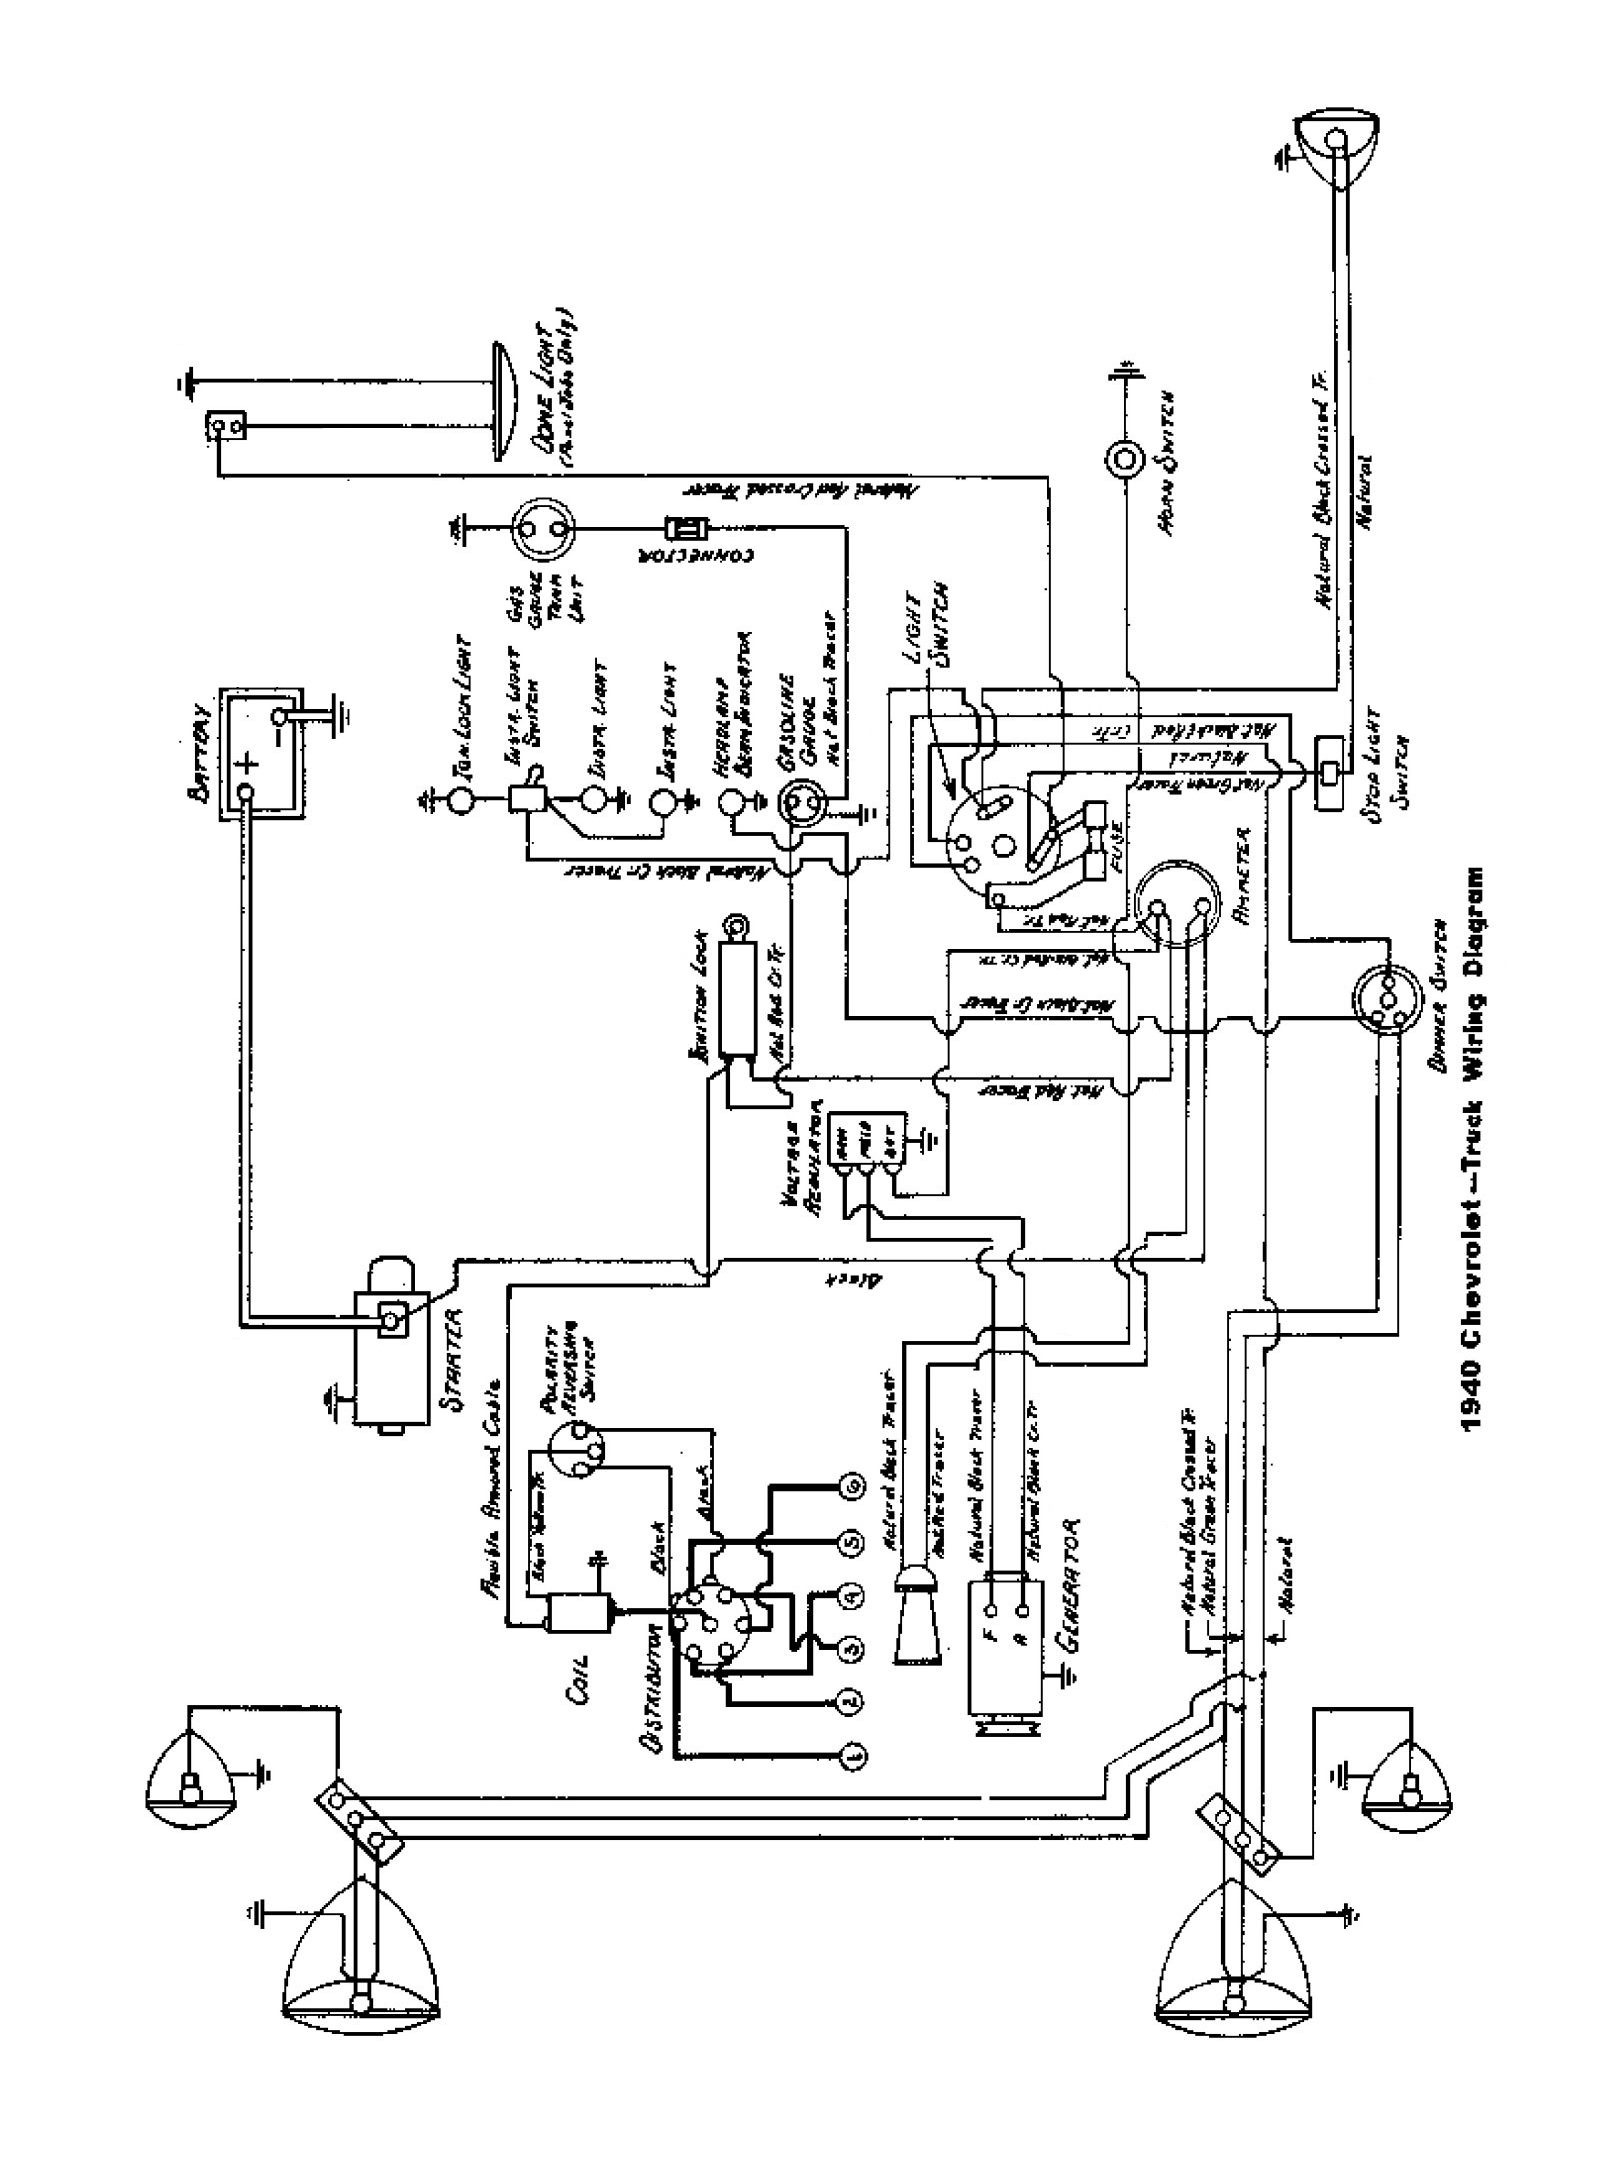 40truck chevy wiring diagrams 1996 chevy truck ignition wiring diagram at webbmarketing.co